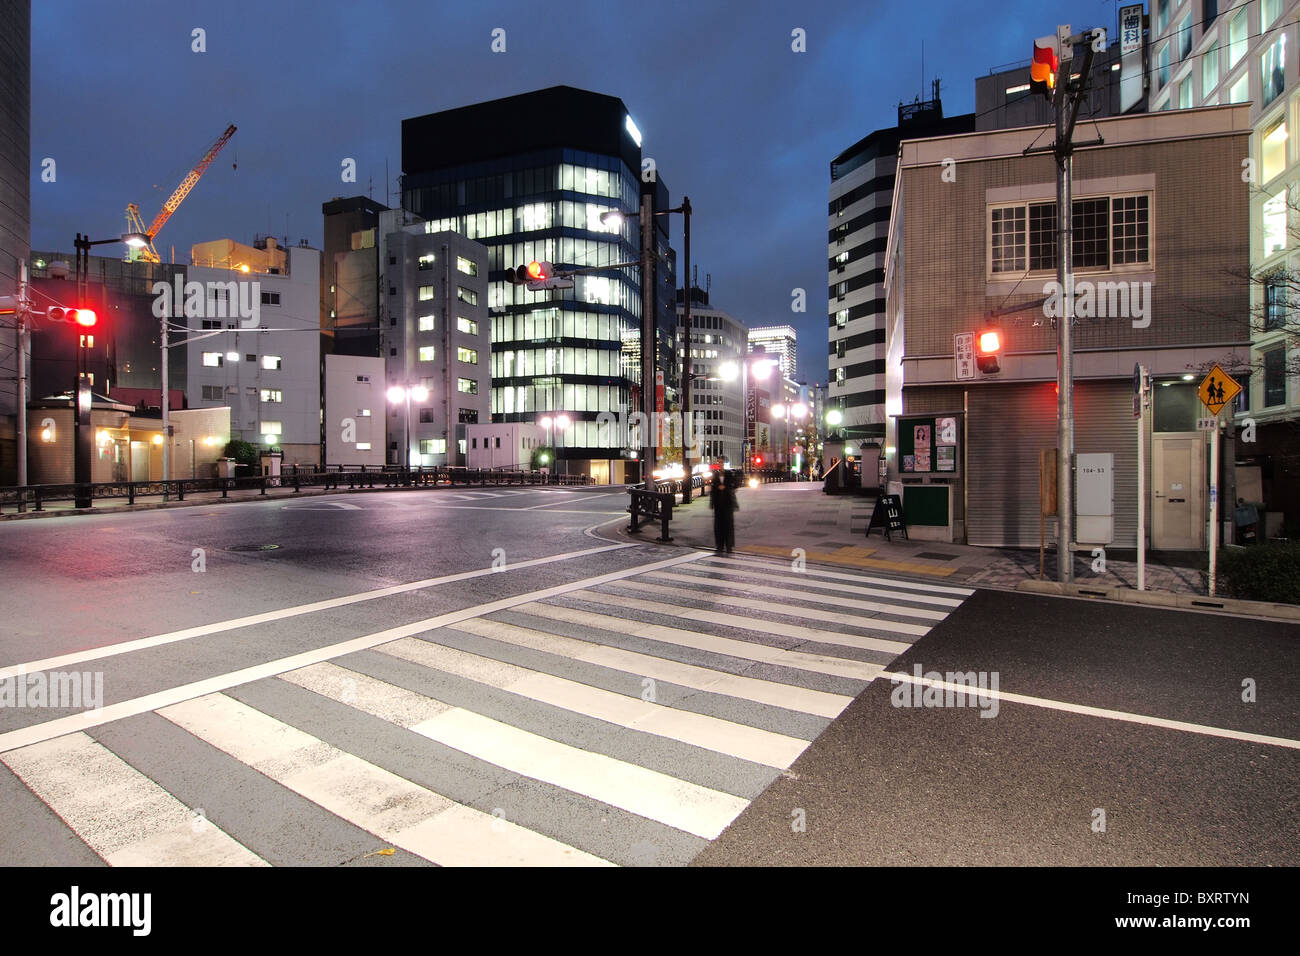 Zebra Crossing at night in a deserted district of downtown Tokyo Japan - Stock Image